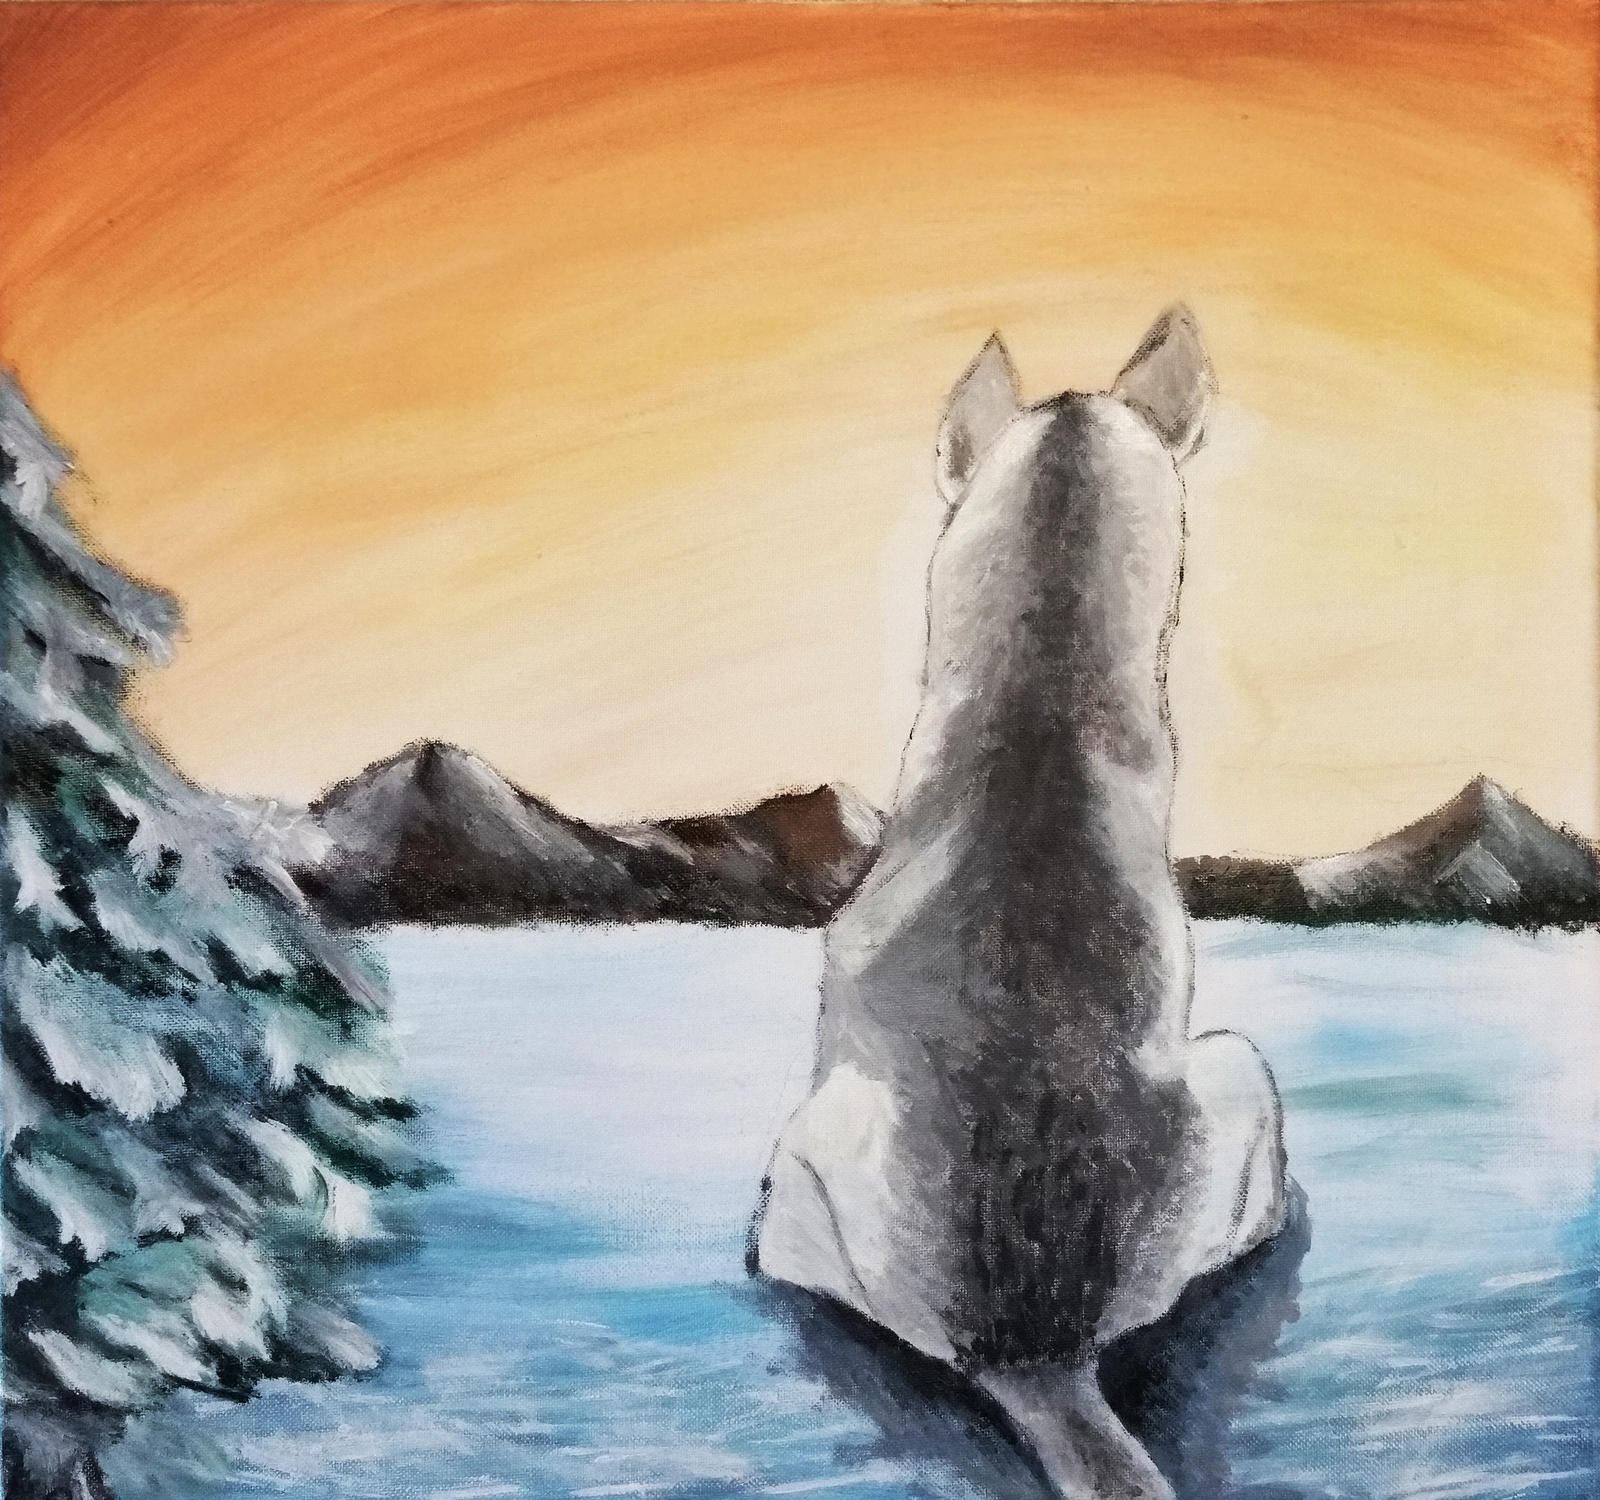 Lone Husky watching over Nordic mountain tops